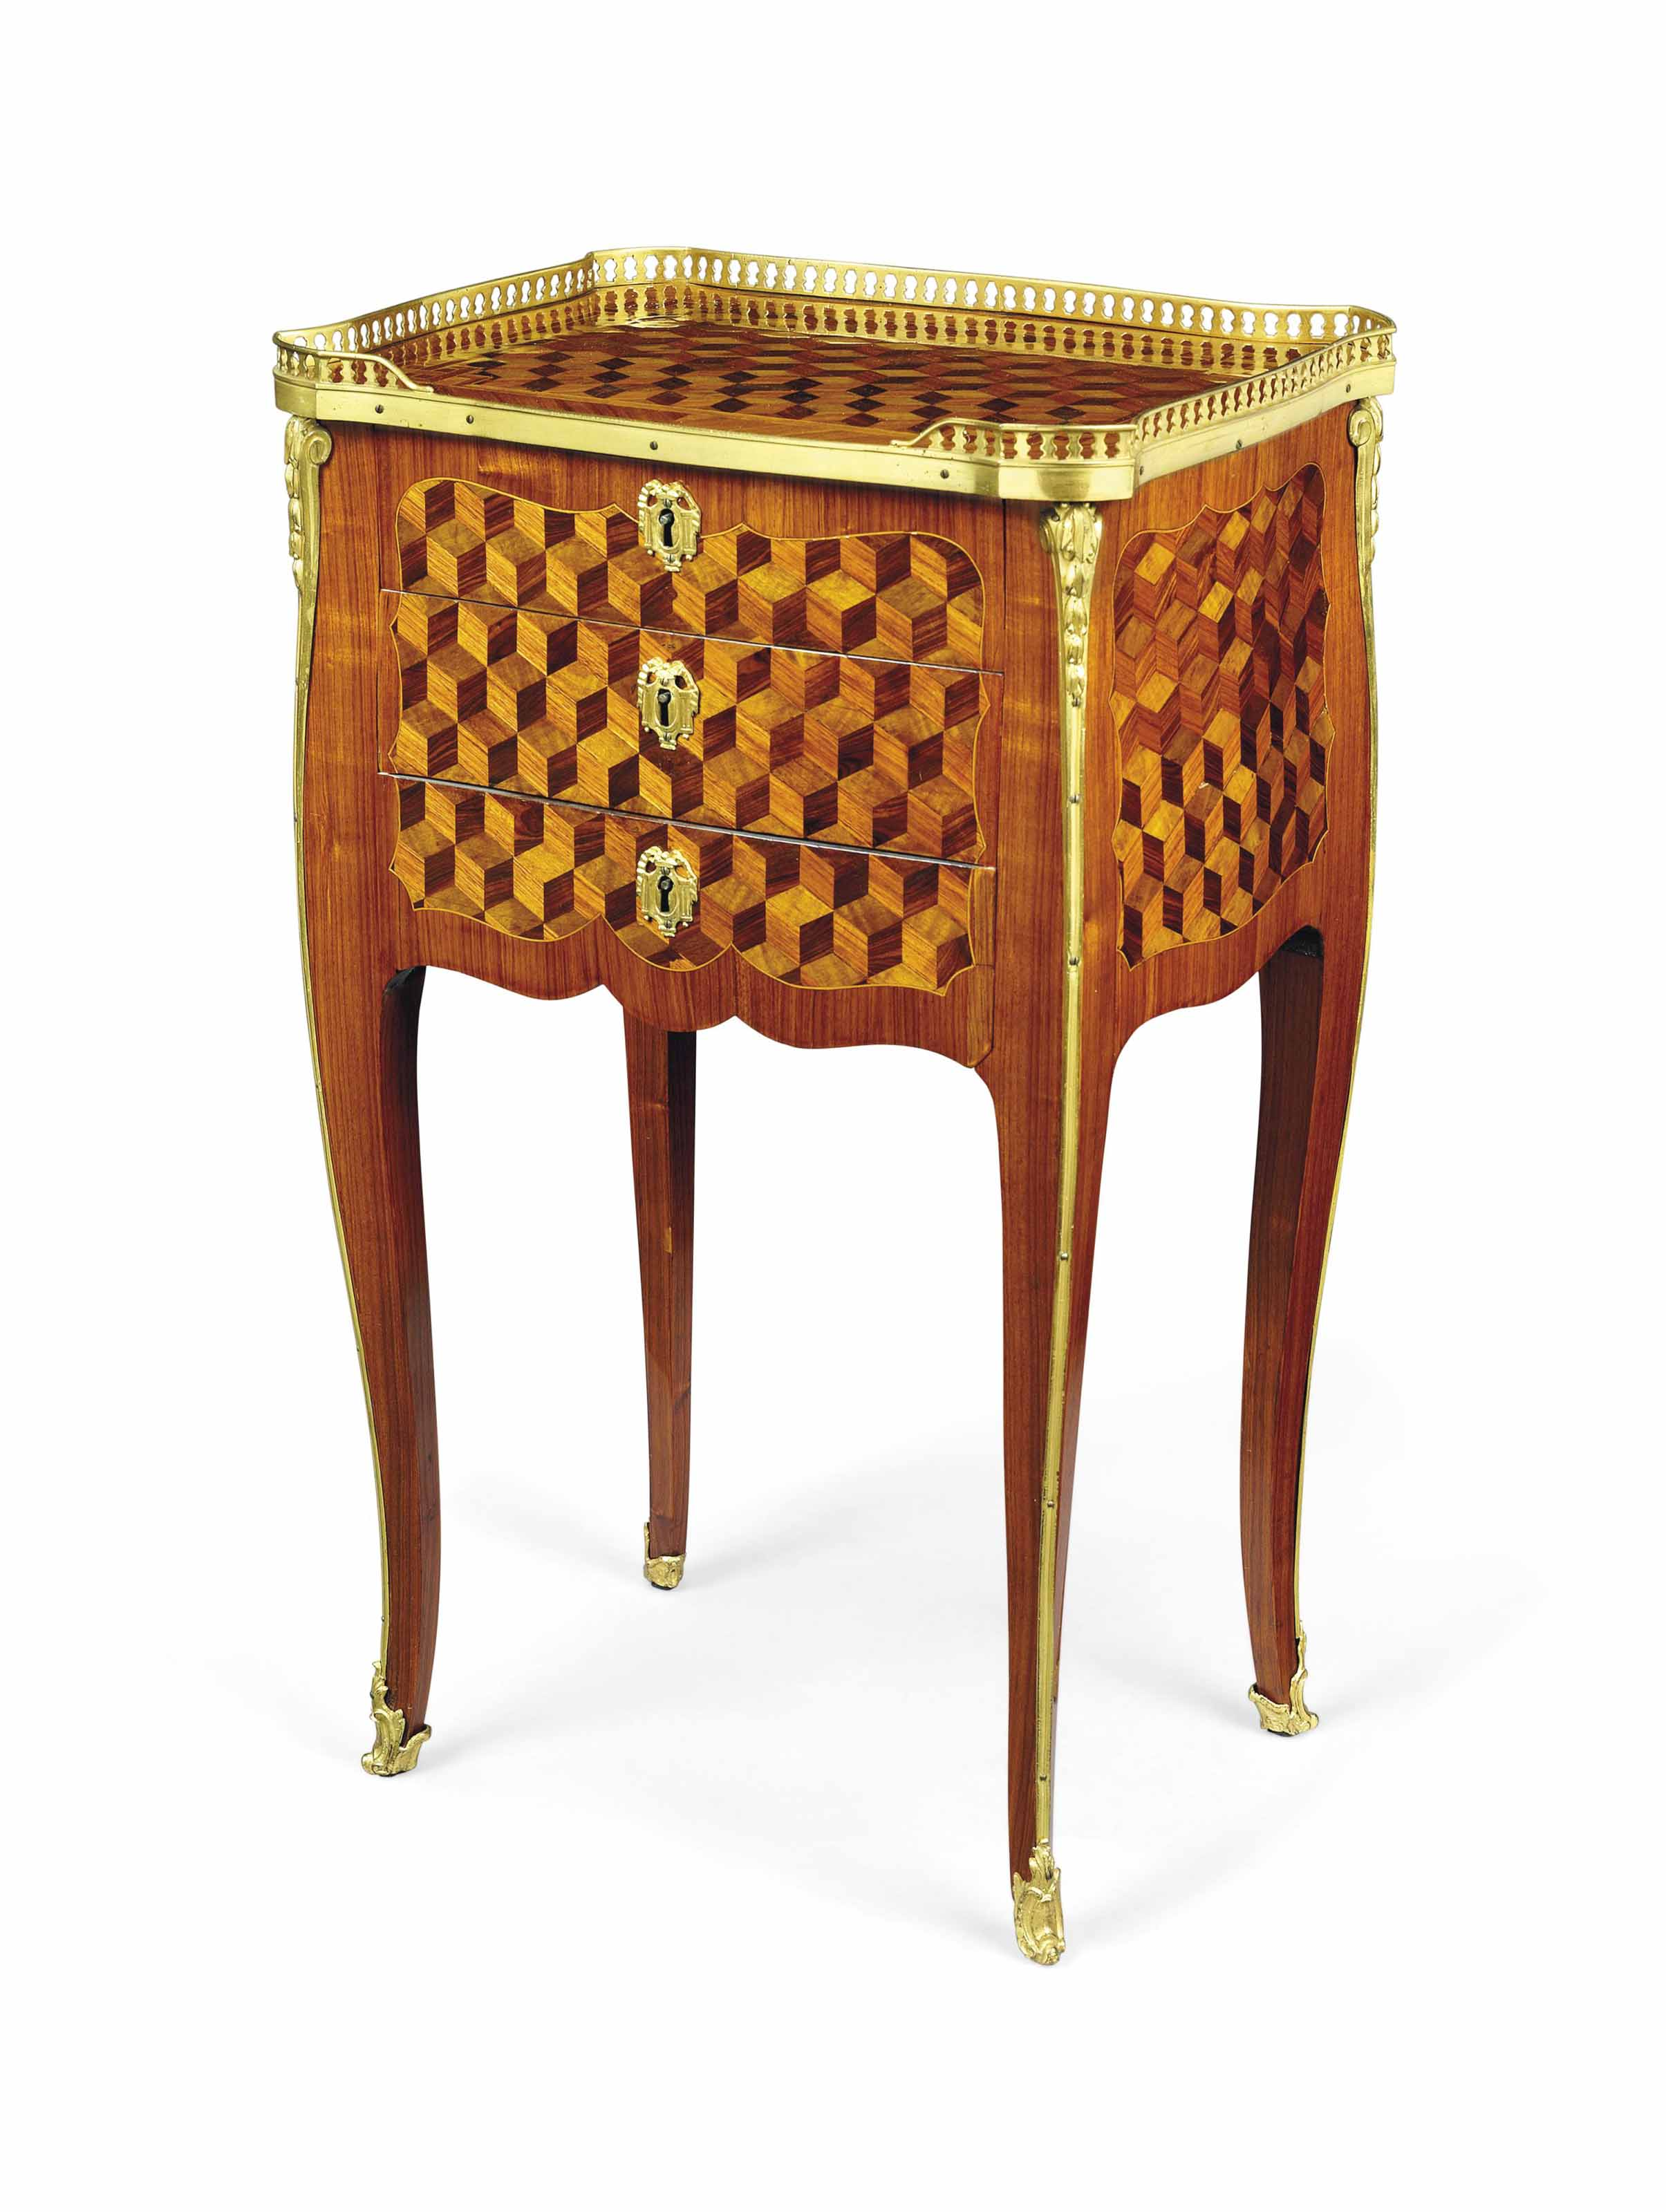 A LATE LOUIS XV ORMOLU-MOUNTED TULIPWOOD, KINGWOOD, SYCAMORE AND GREEN-STAINED WOOD PARQUETRY OCCASIONAL TABLE